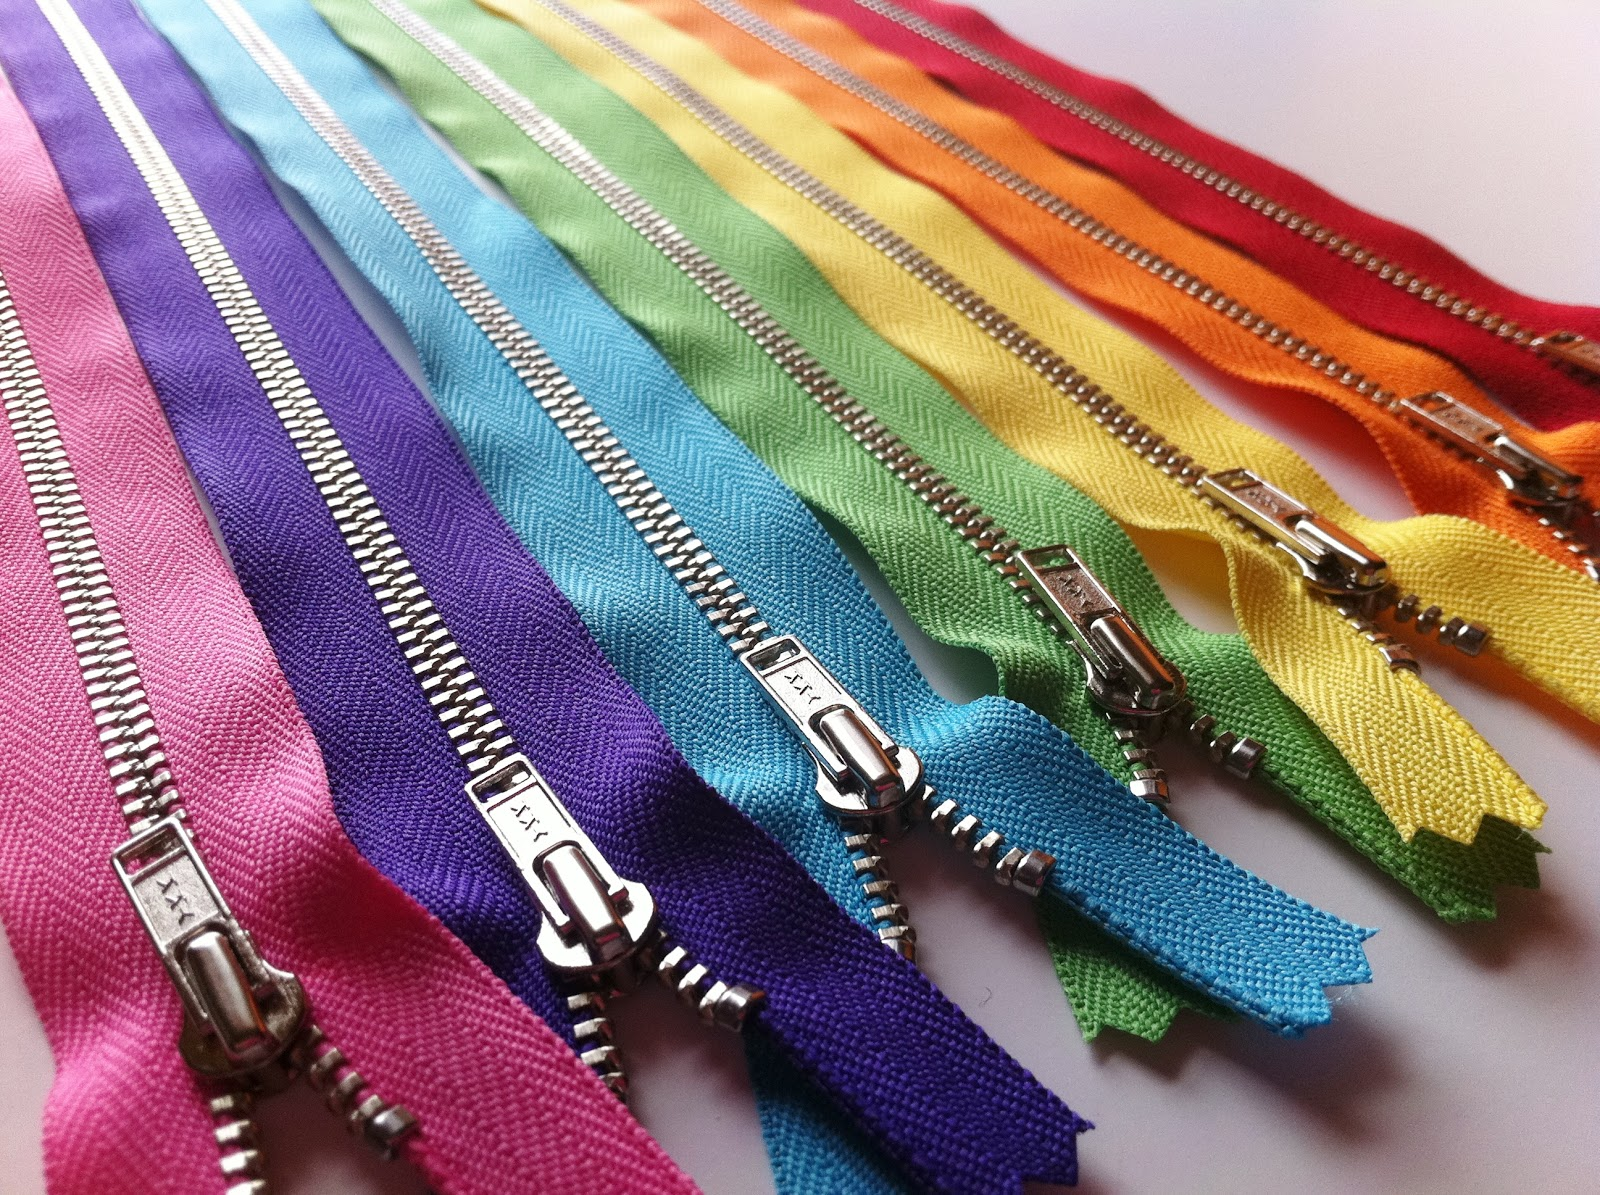 ykk zippers Our zipper styles any tape color, length and teeth finish can't beat the price zipper tape color options are in our color card section.